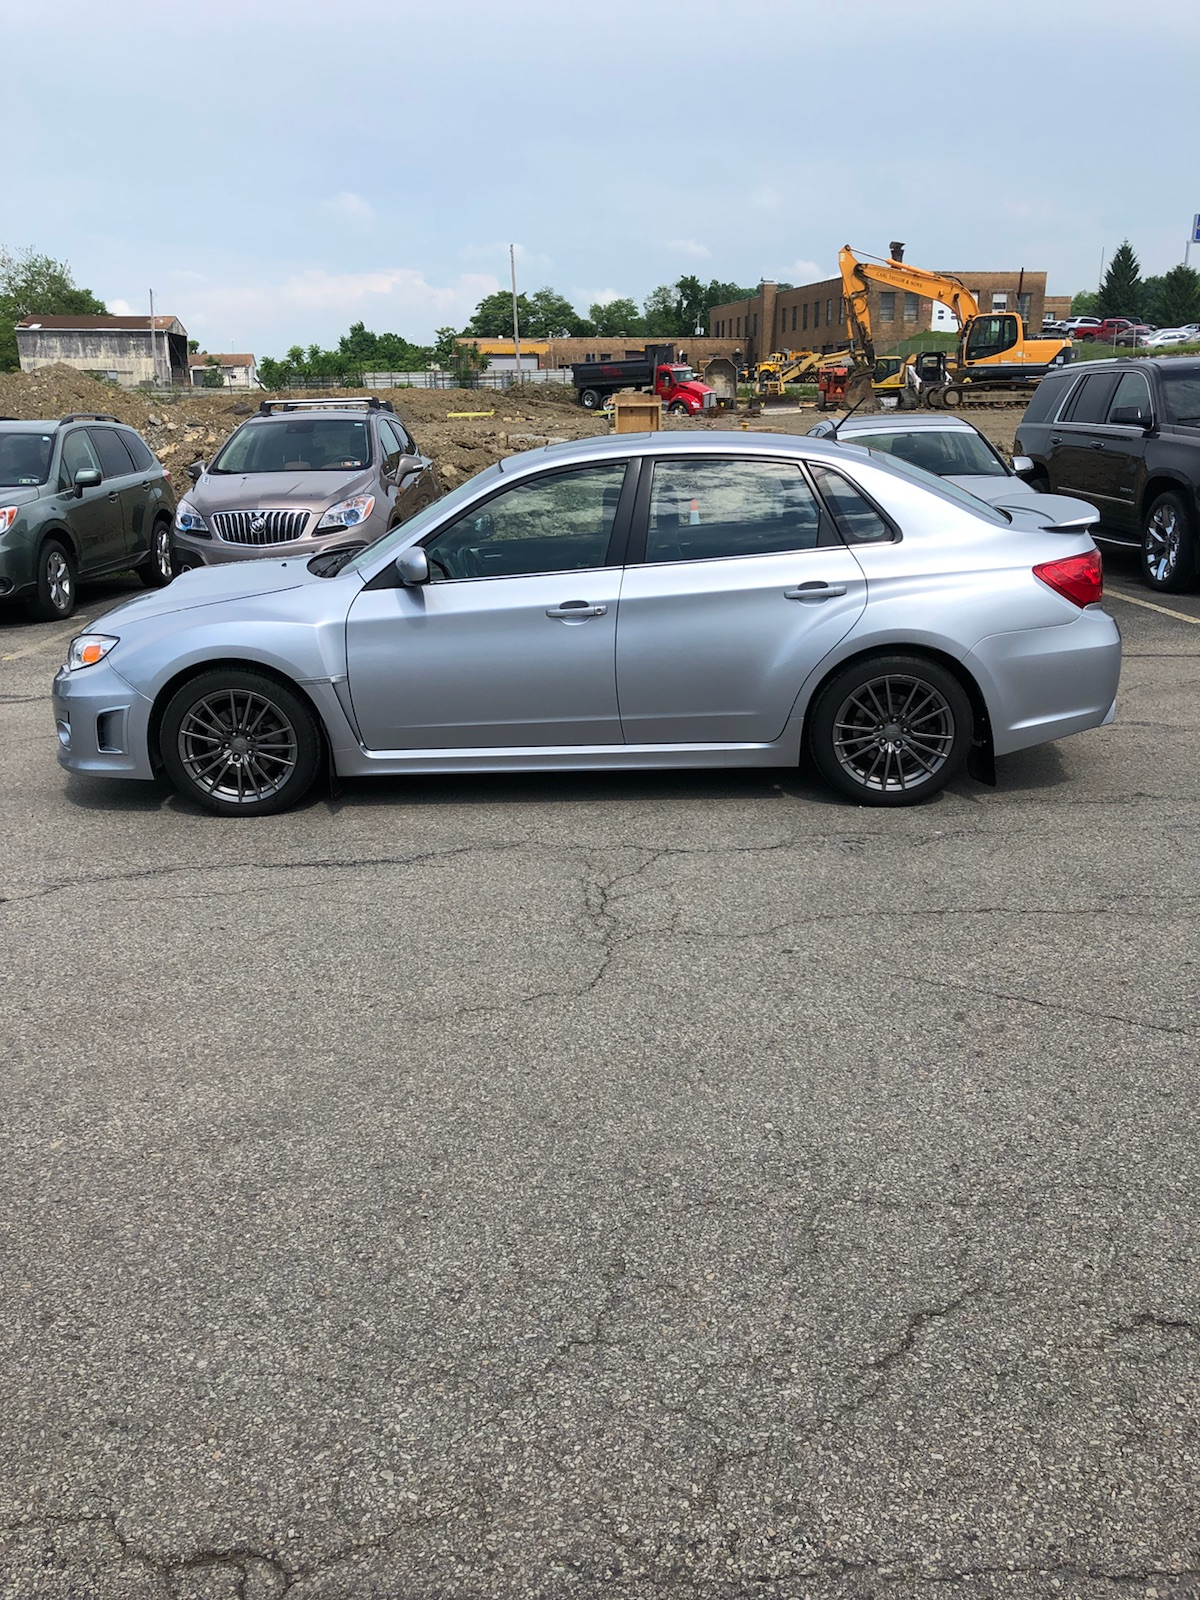 2013 Wrx Limited - unmodified & unmolested-img_14741-jpg